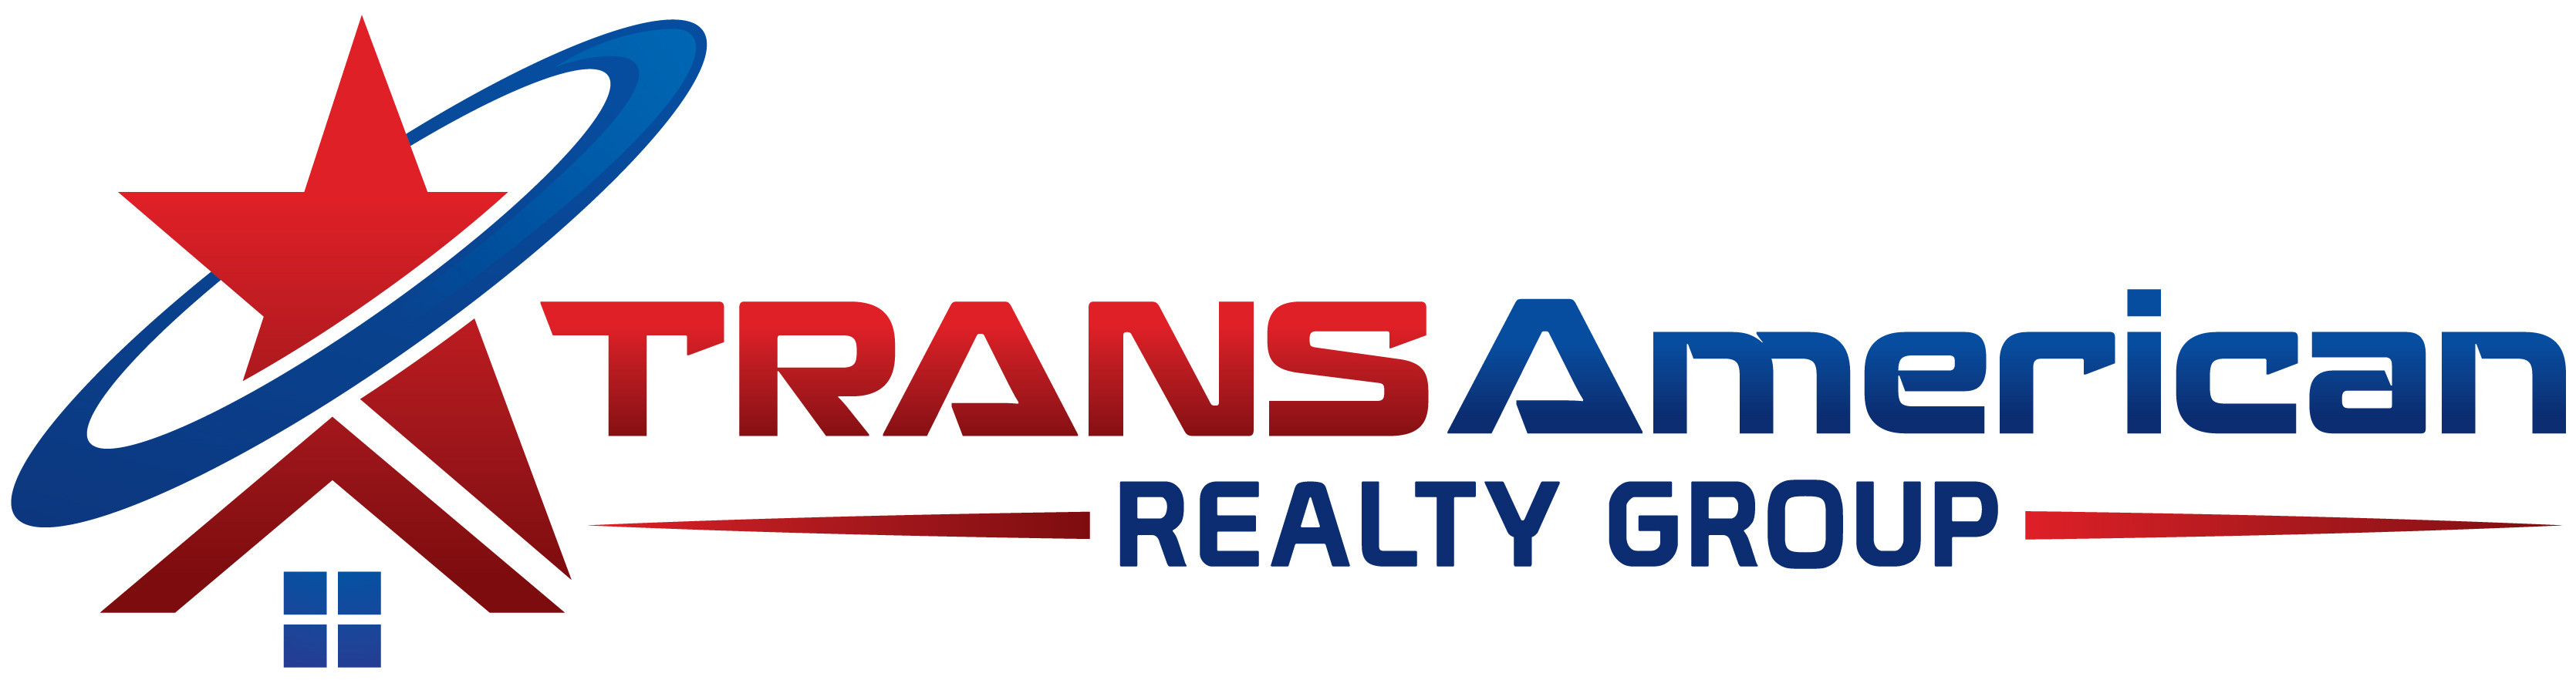 Transamerican Realty Group Holdings